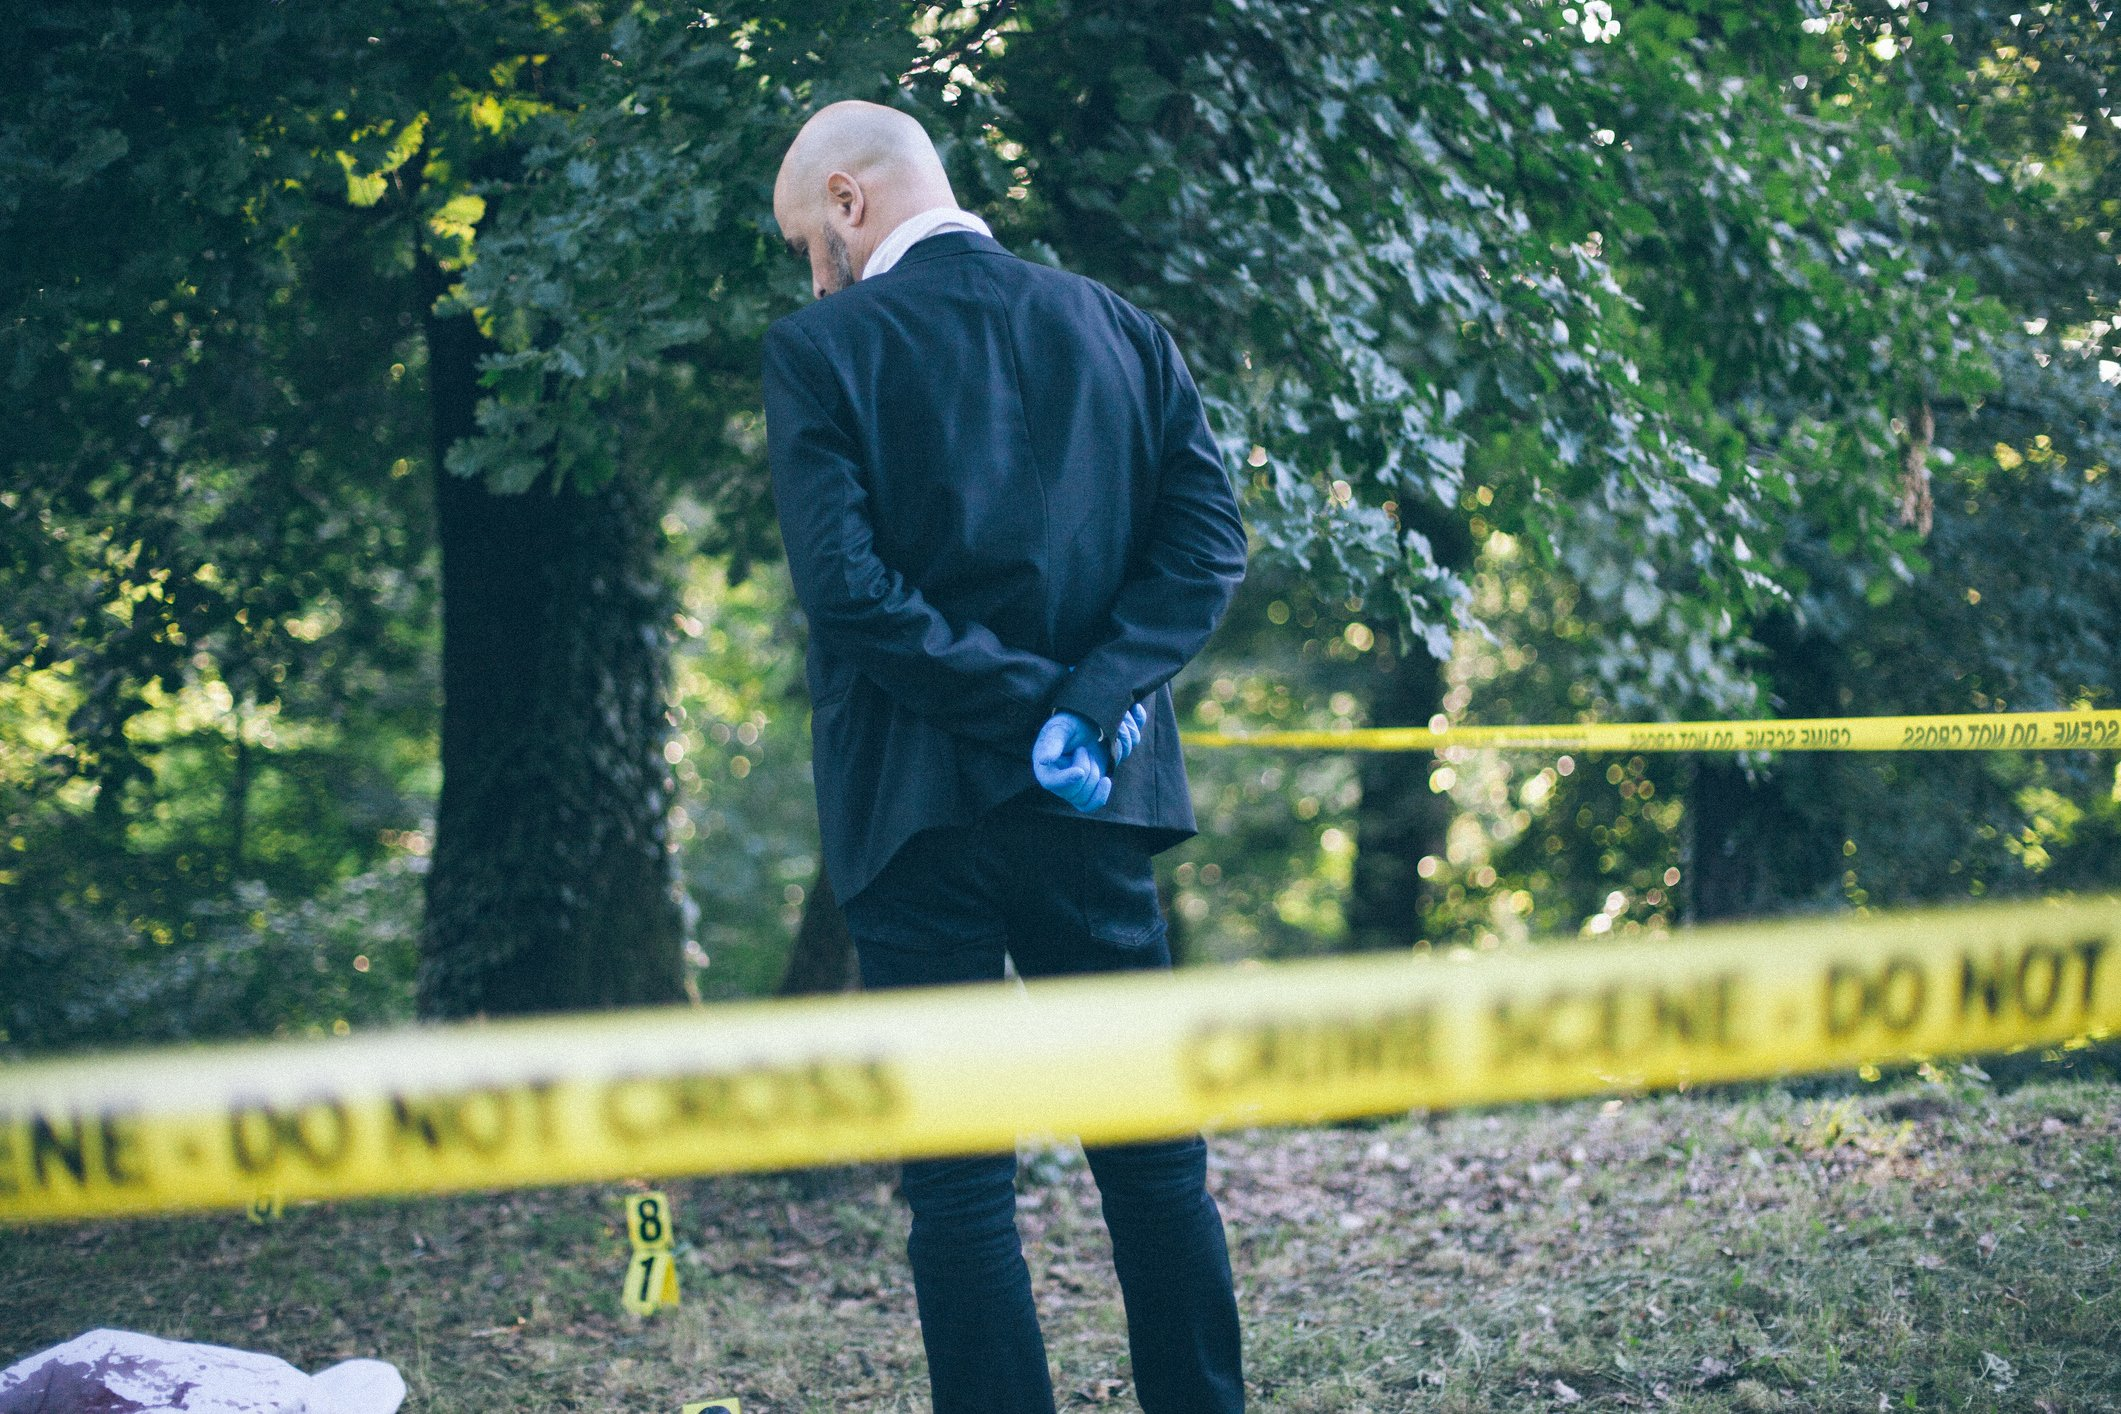 FITSNews – 'Murder Is The Case': Slayings In South Carolina Soar By 25 Percent